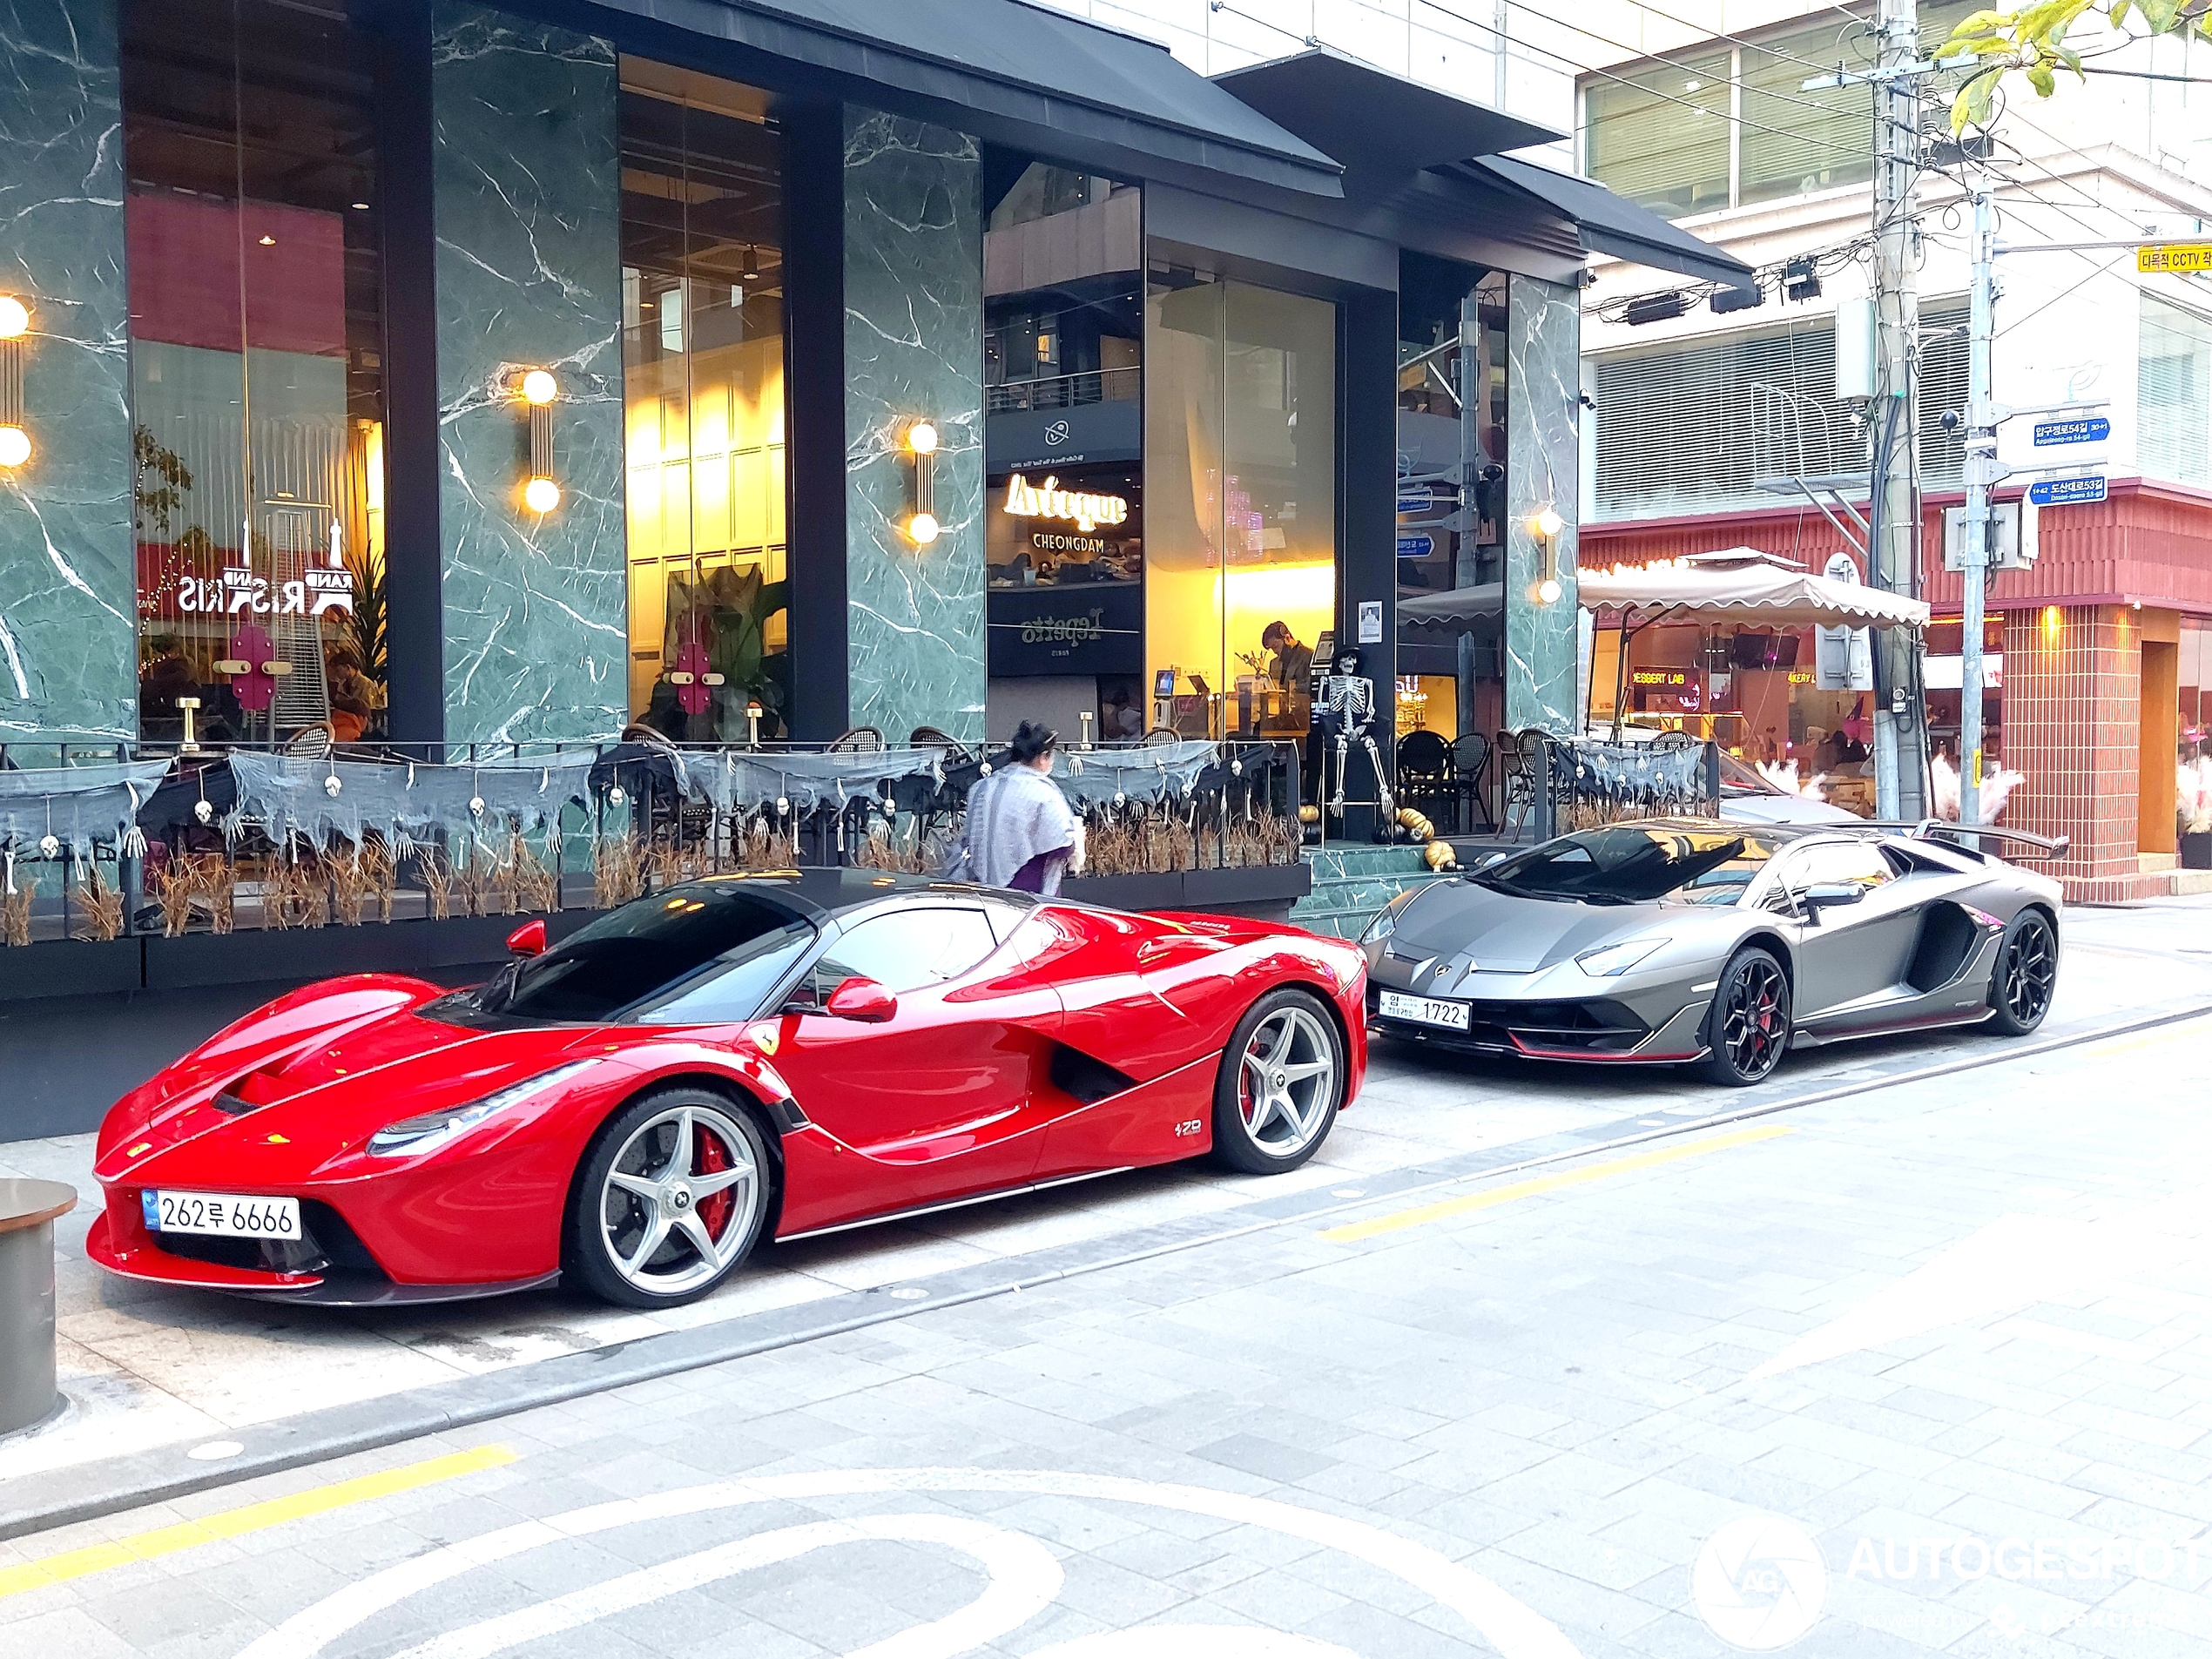 LaFerrari Aperta spotted in a scary environment